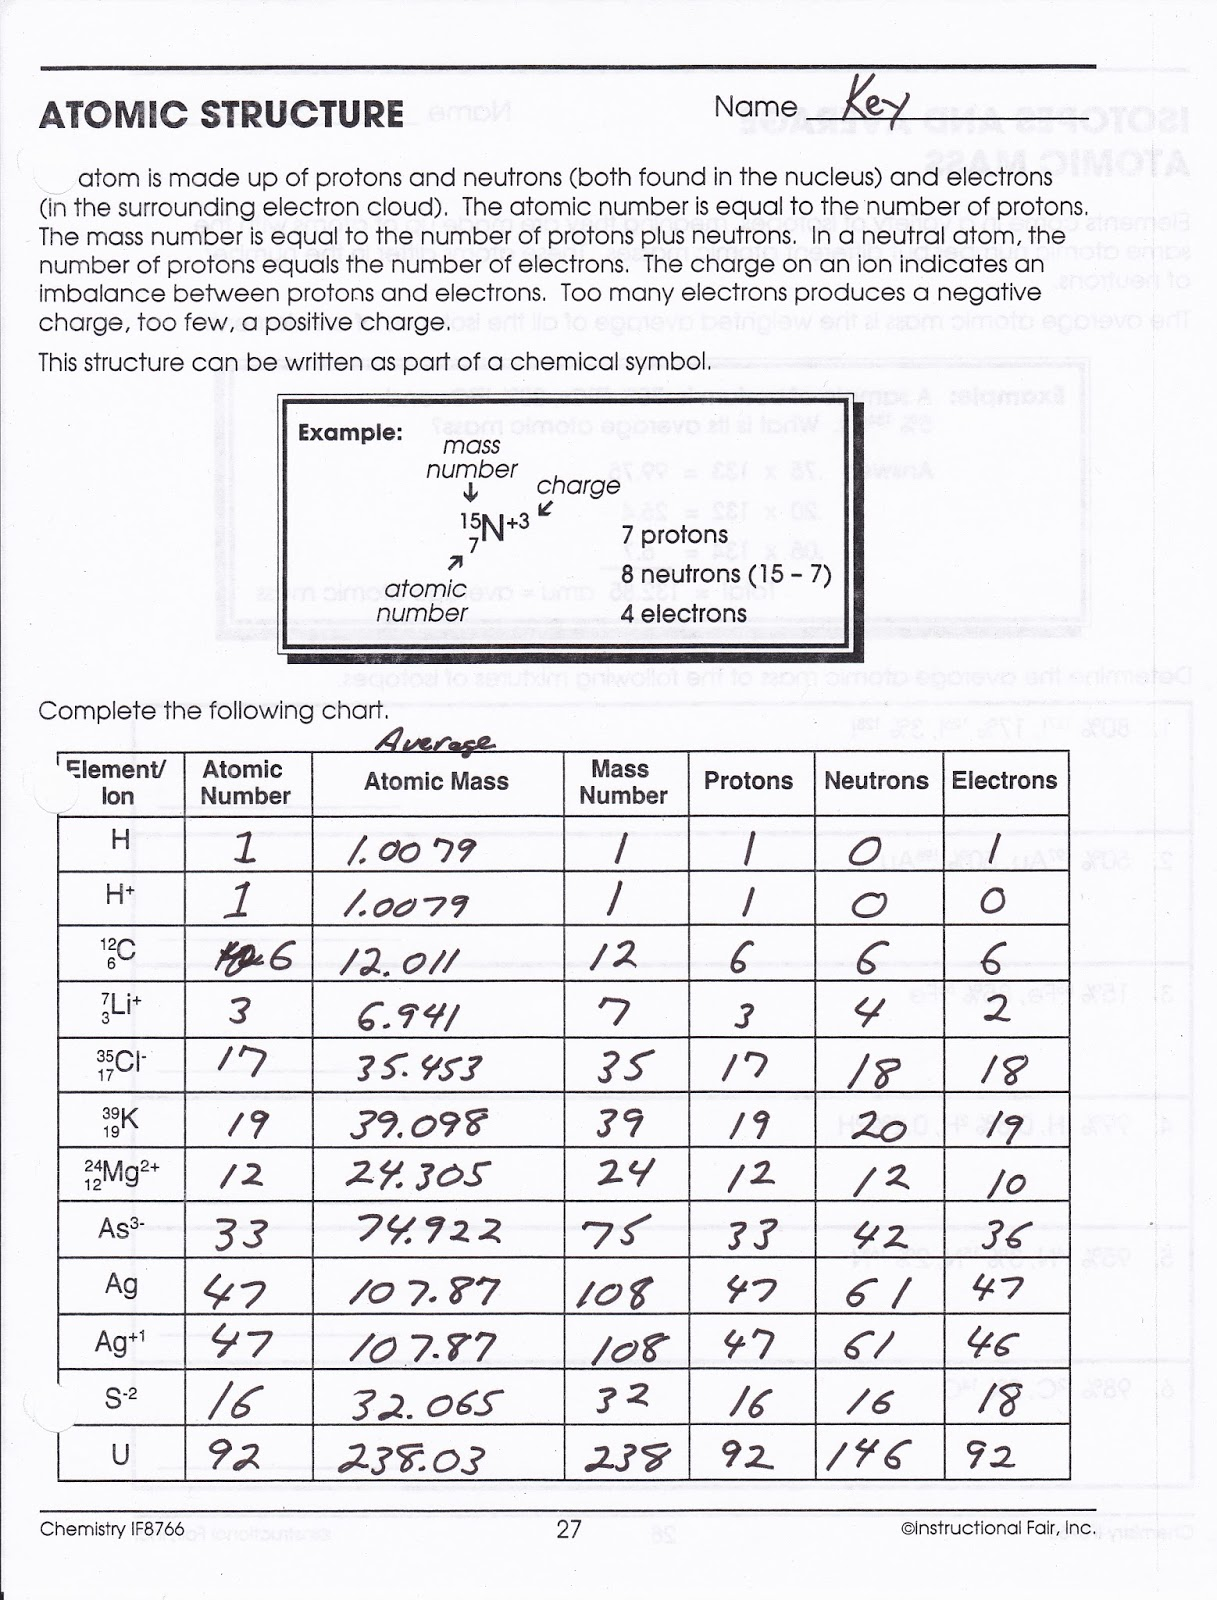 Worksheet Atom Structure Worksheet atomic structure worksheet 1 answers answers